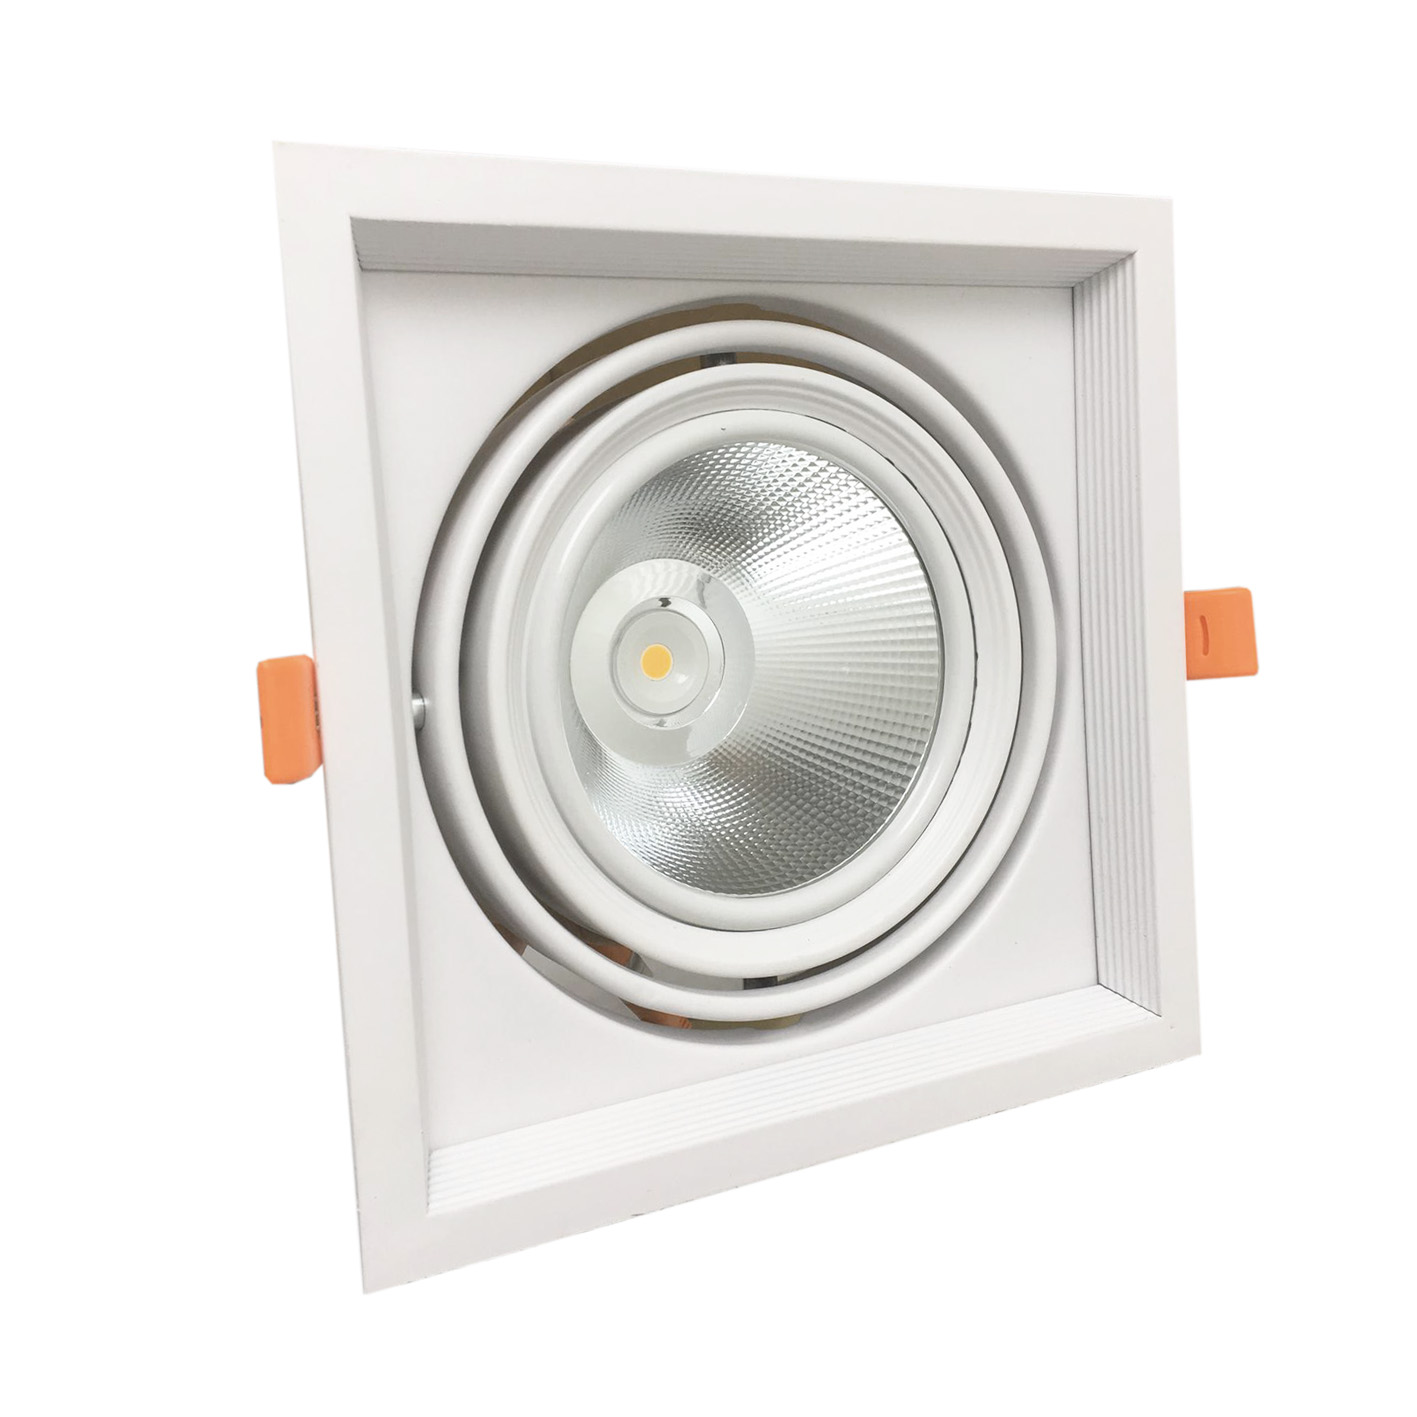 AR111 Anillo portafaretto ajustable 20w completa de LED spotlight